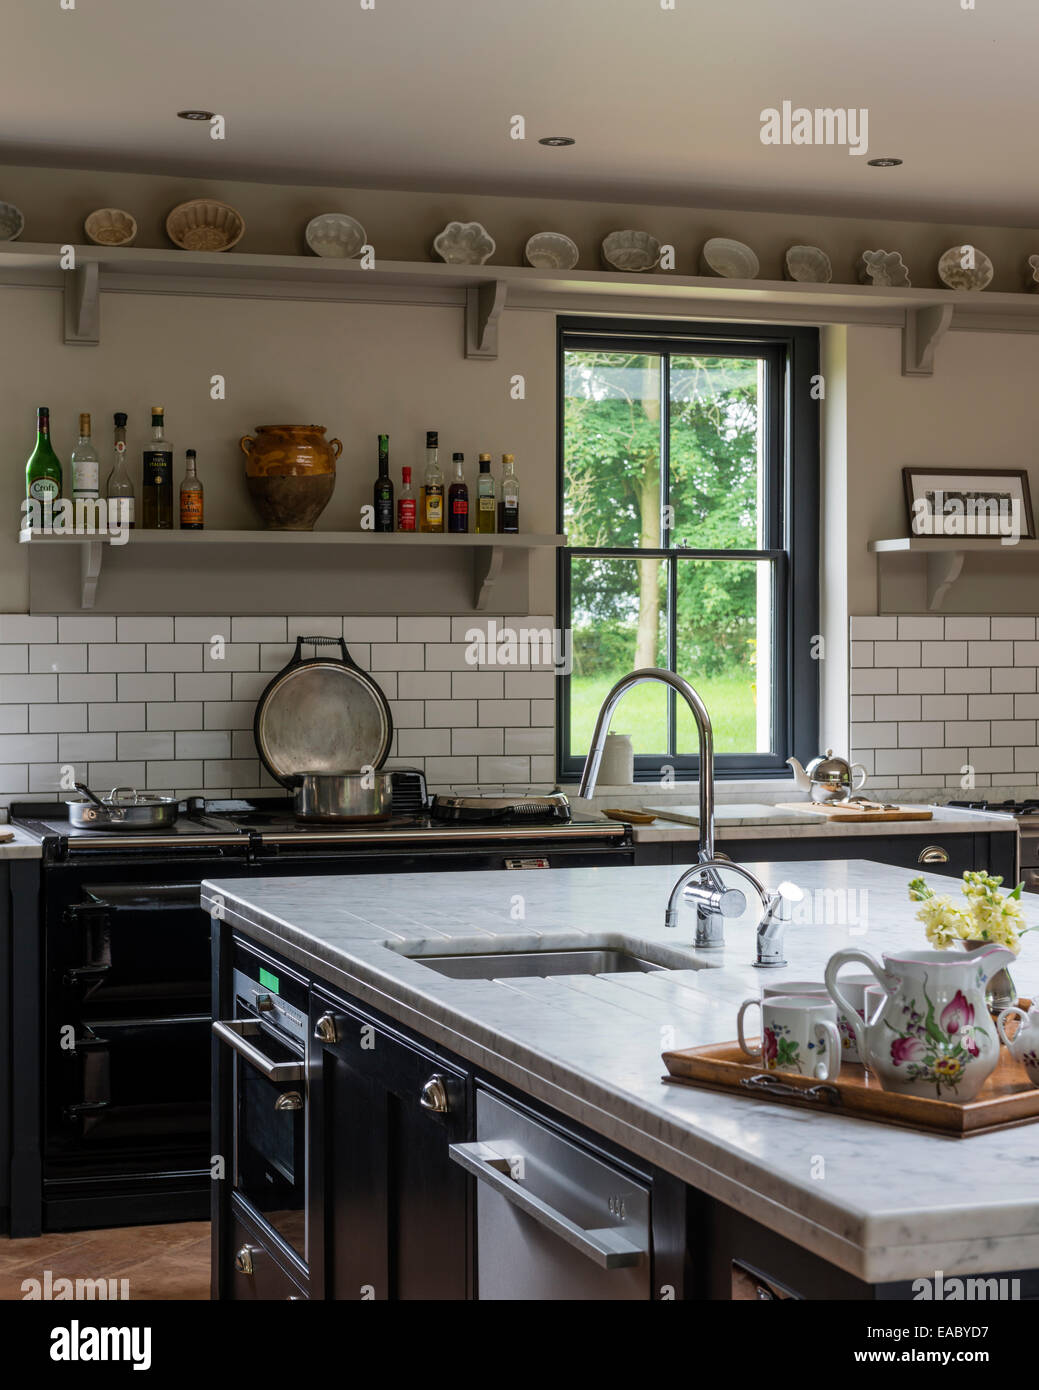 Black Country Kitchen Black Tiled Worktop In Country Kitchen With Limed Wood Fitted